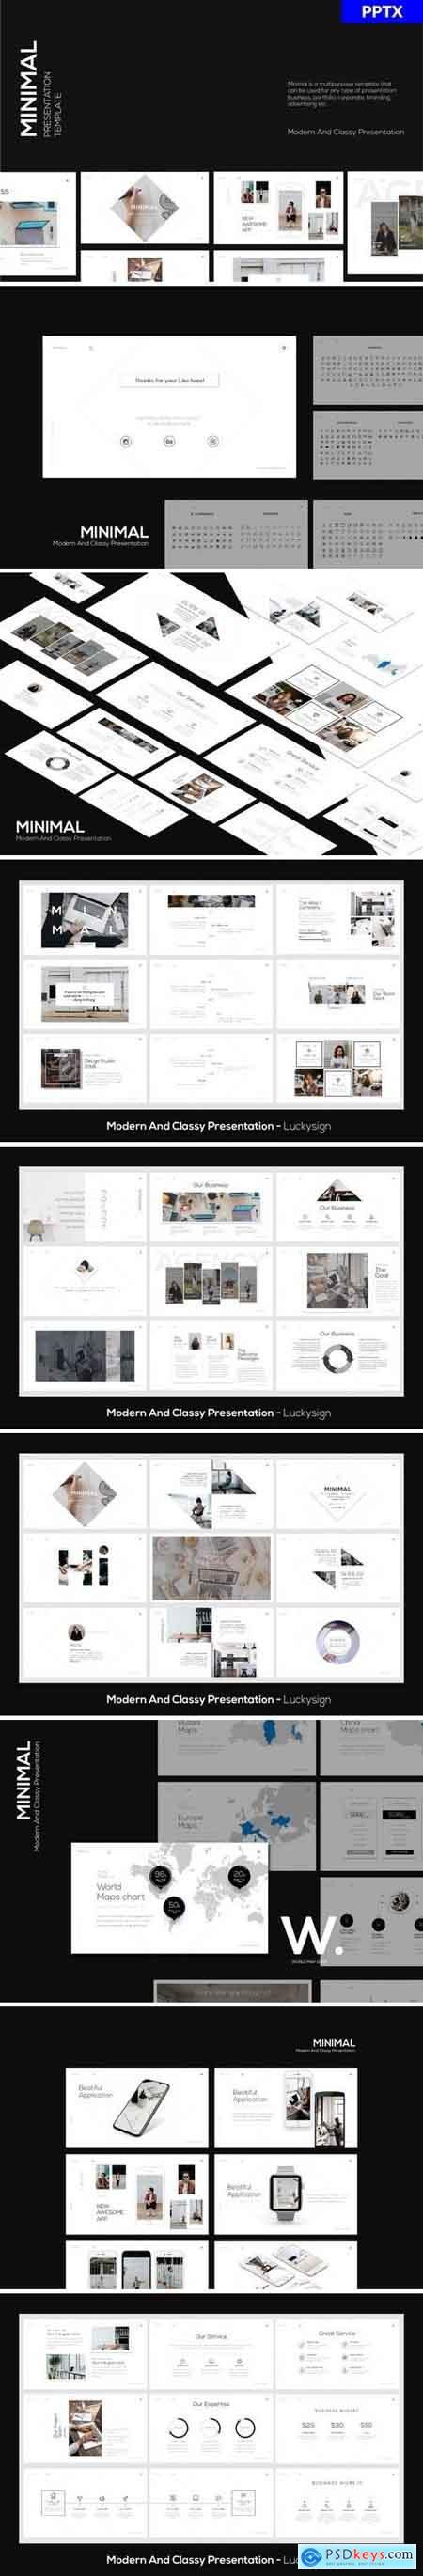 MINIMA - PowerPoint, Keynote and Google Slides Template LS